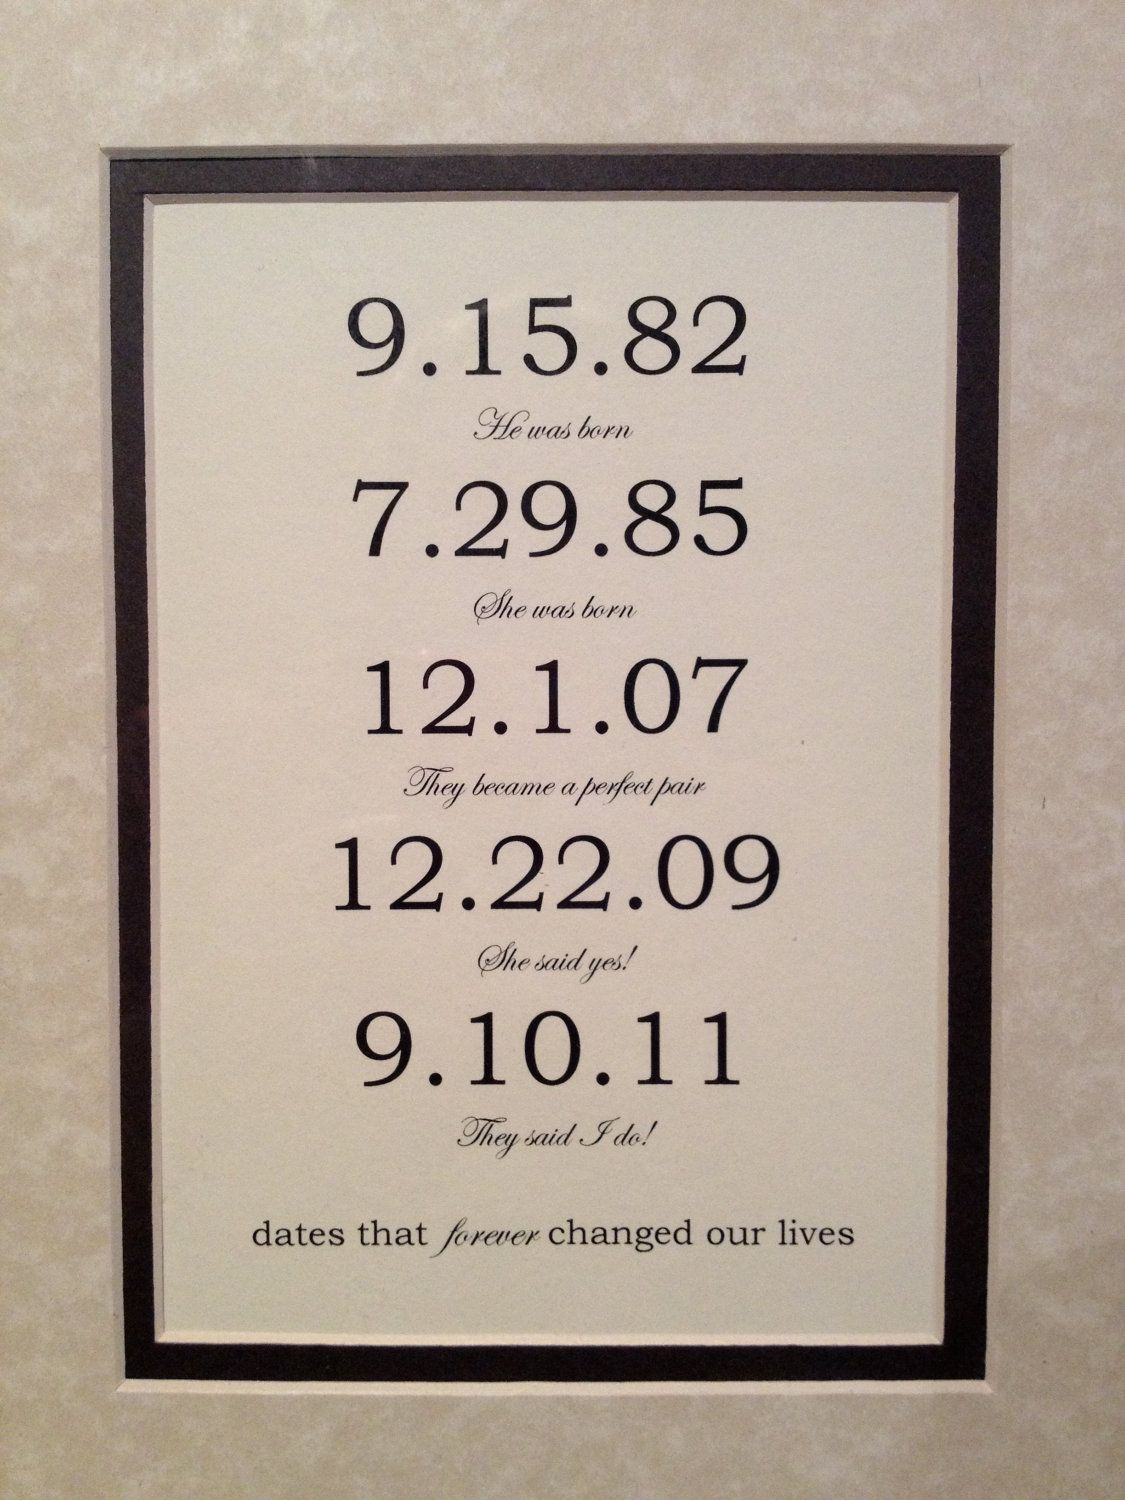 framed matted custom date art print personalized With wedding anniversary dates and gifts